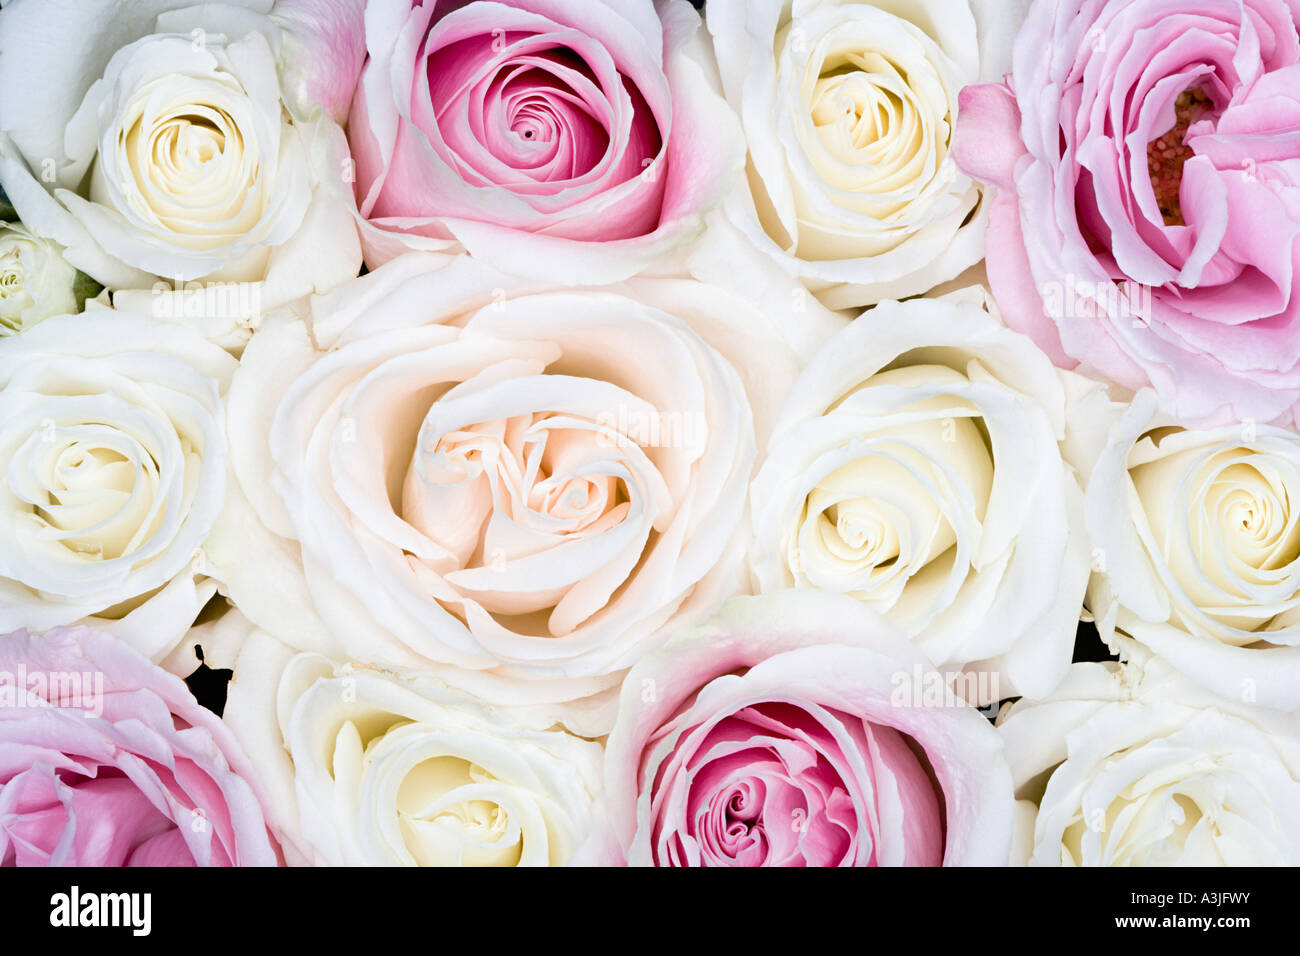 Roses - Stock Image